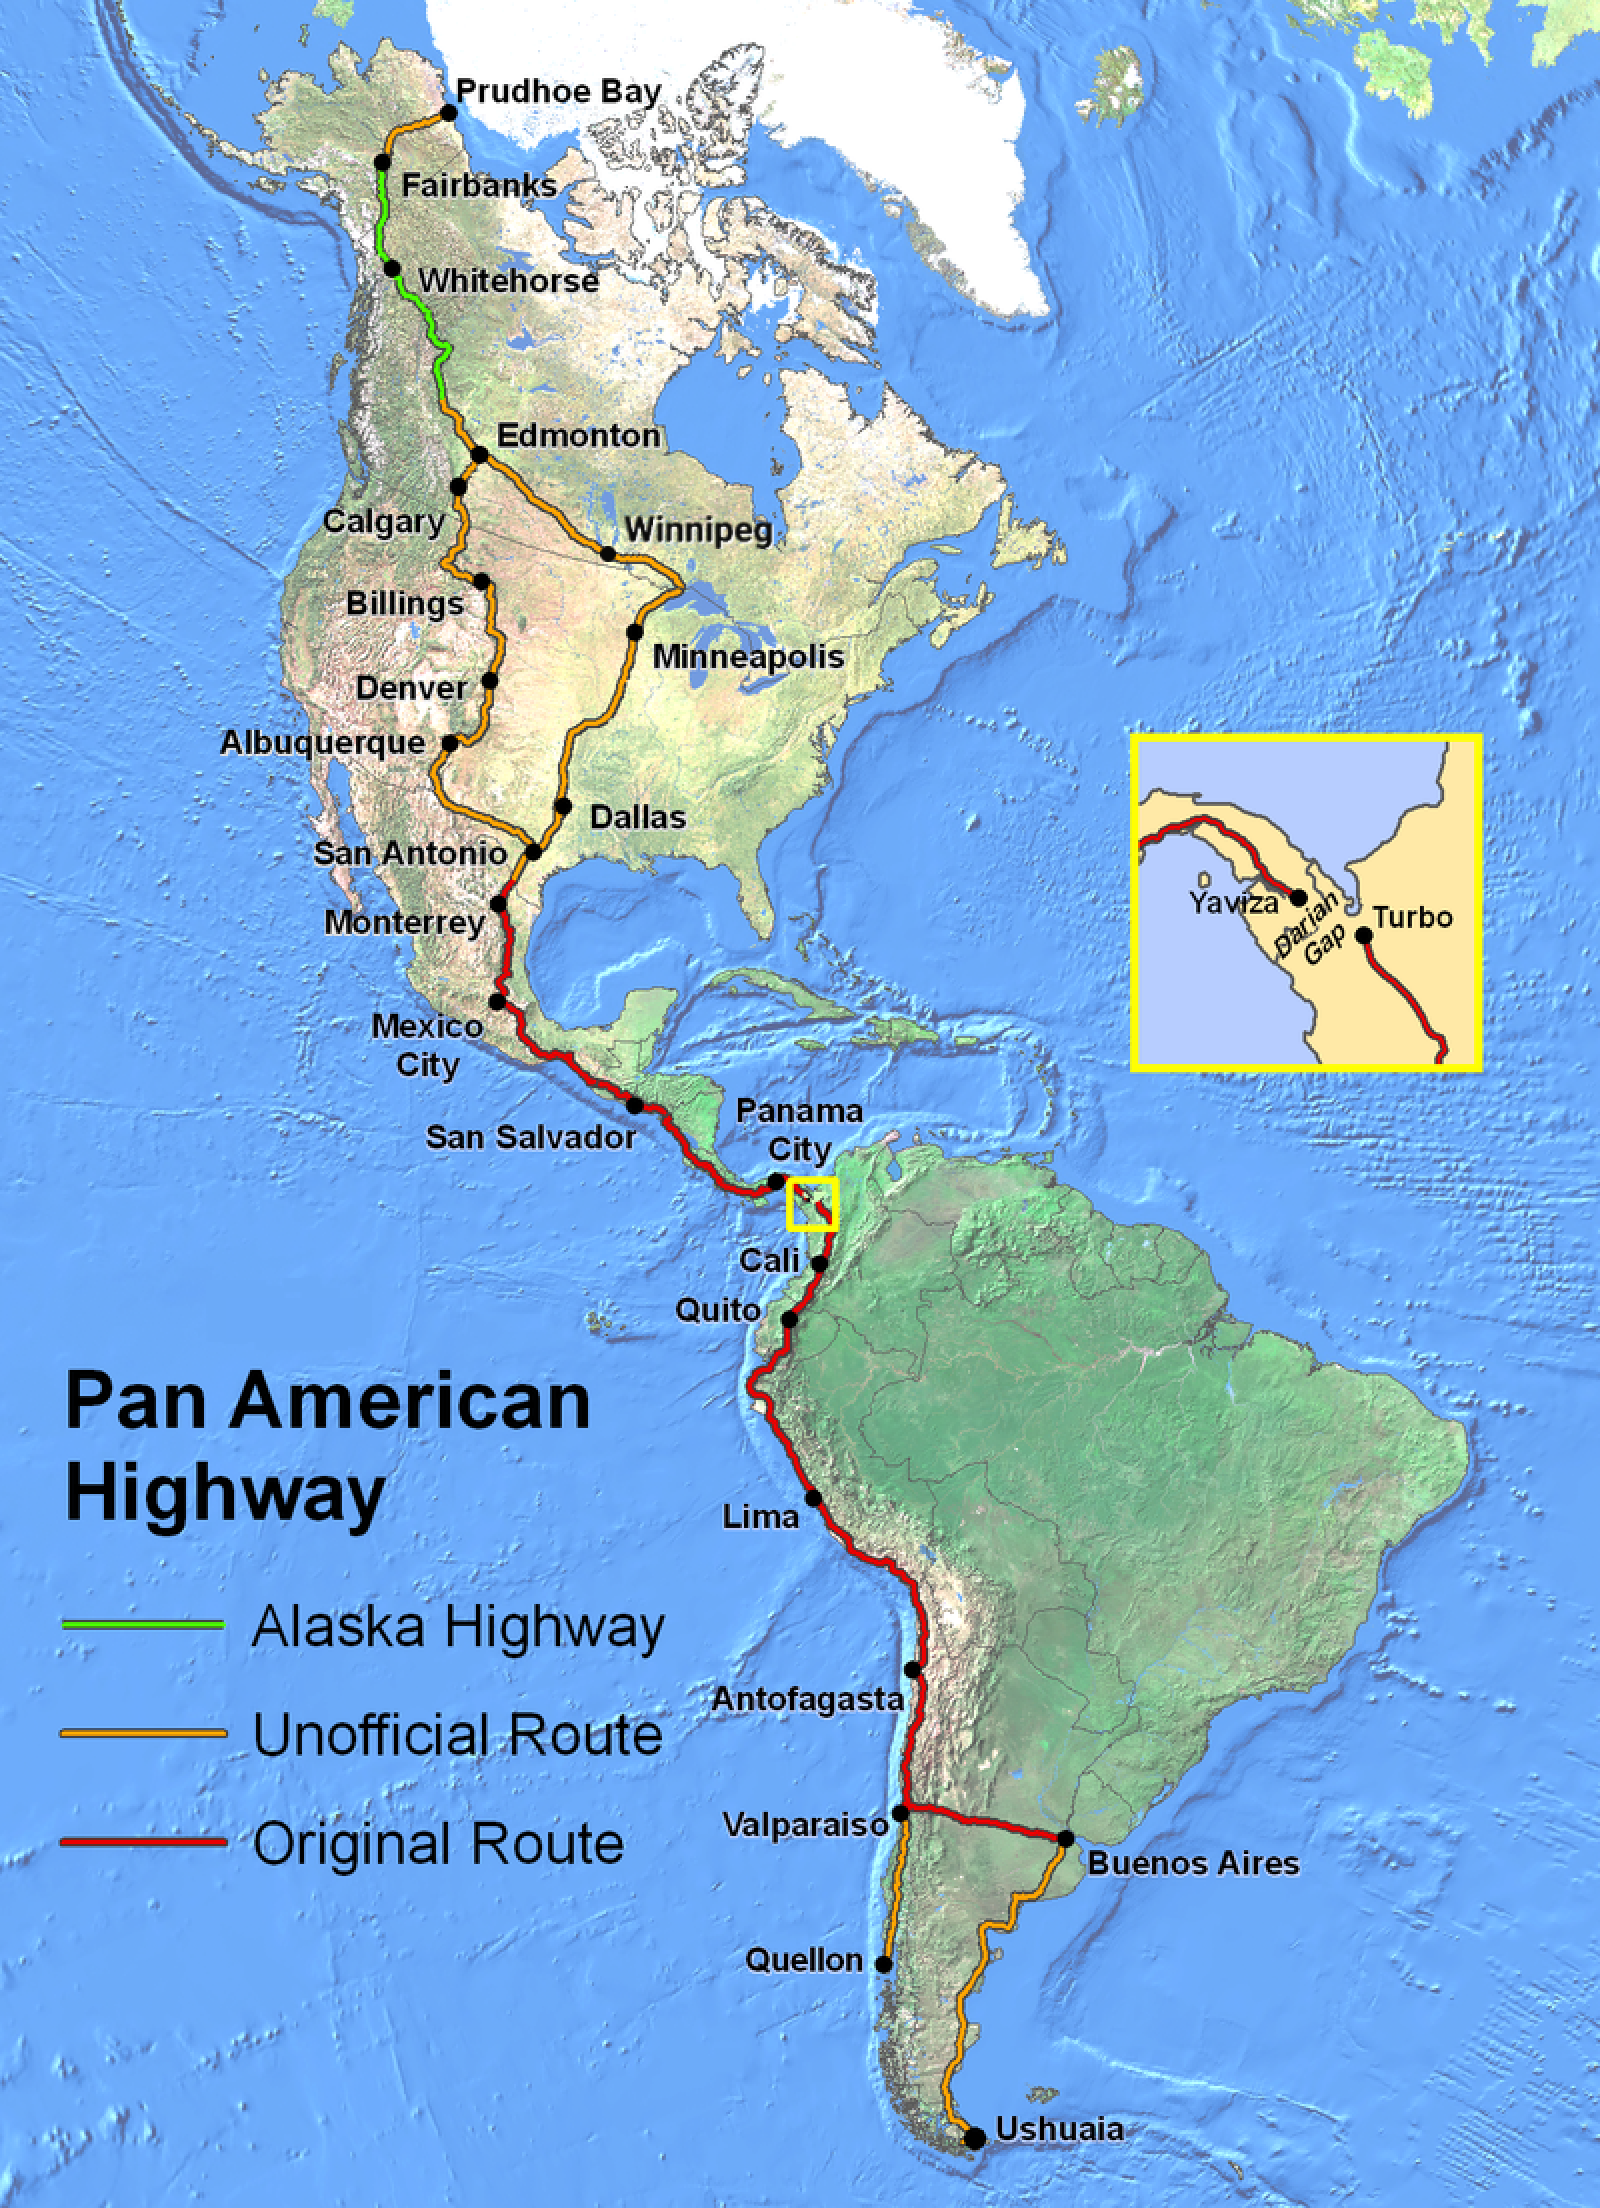 http://upload.wikimedia.org/wikipedia/commons/1/12/PanAmericanHwy.png